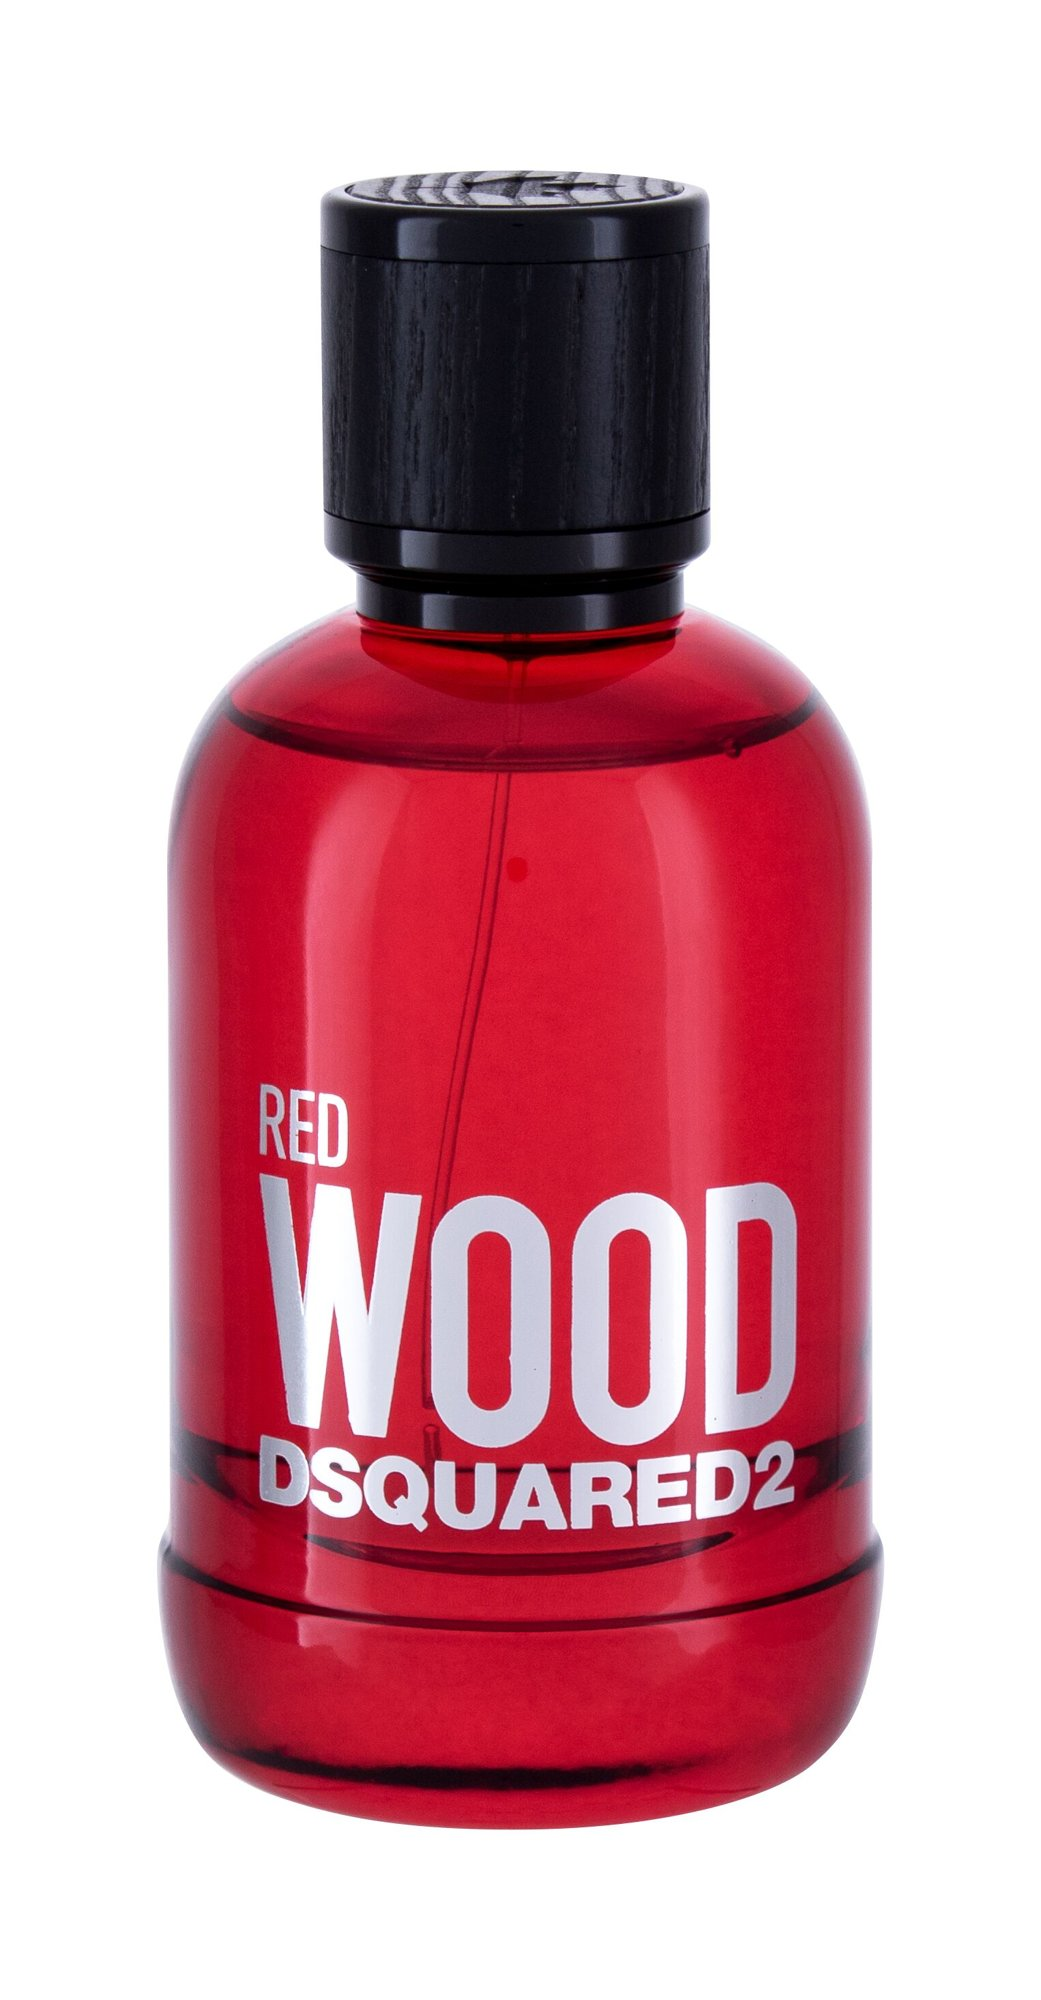 Dsquared2 Red Wood  Toaletní voda, W, 100 ml